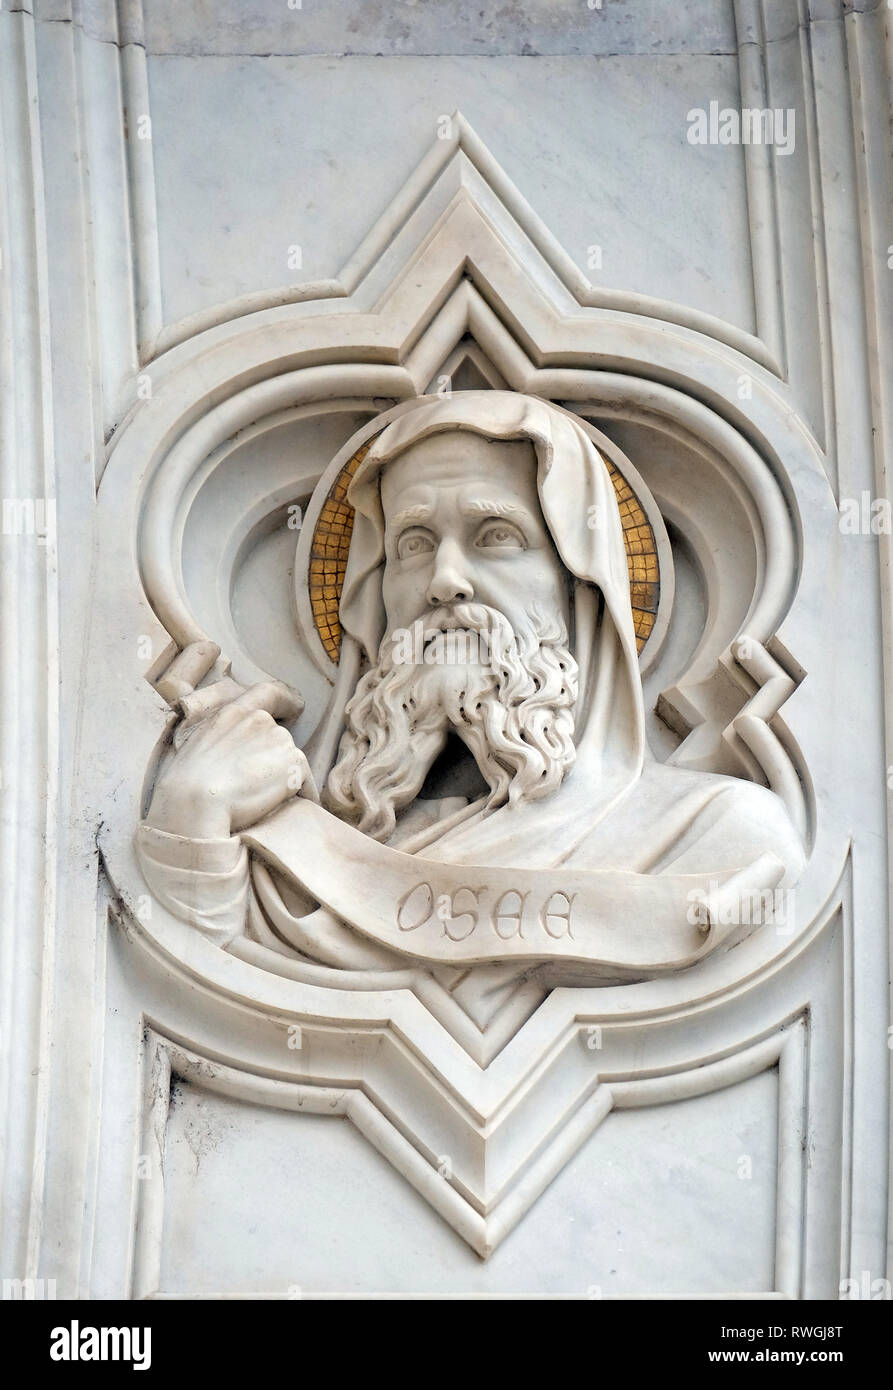 Hosea, relief on the facade of Basilica of Santa Croce (Basilica of the Holy Cross) - famous Franciscan church in Florence, Italy - Stock Image